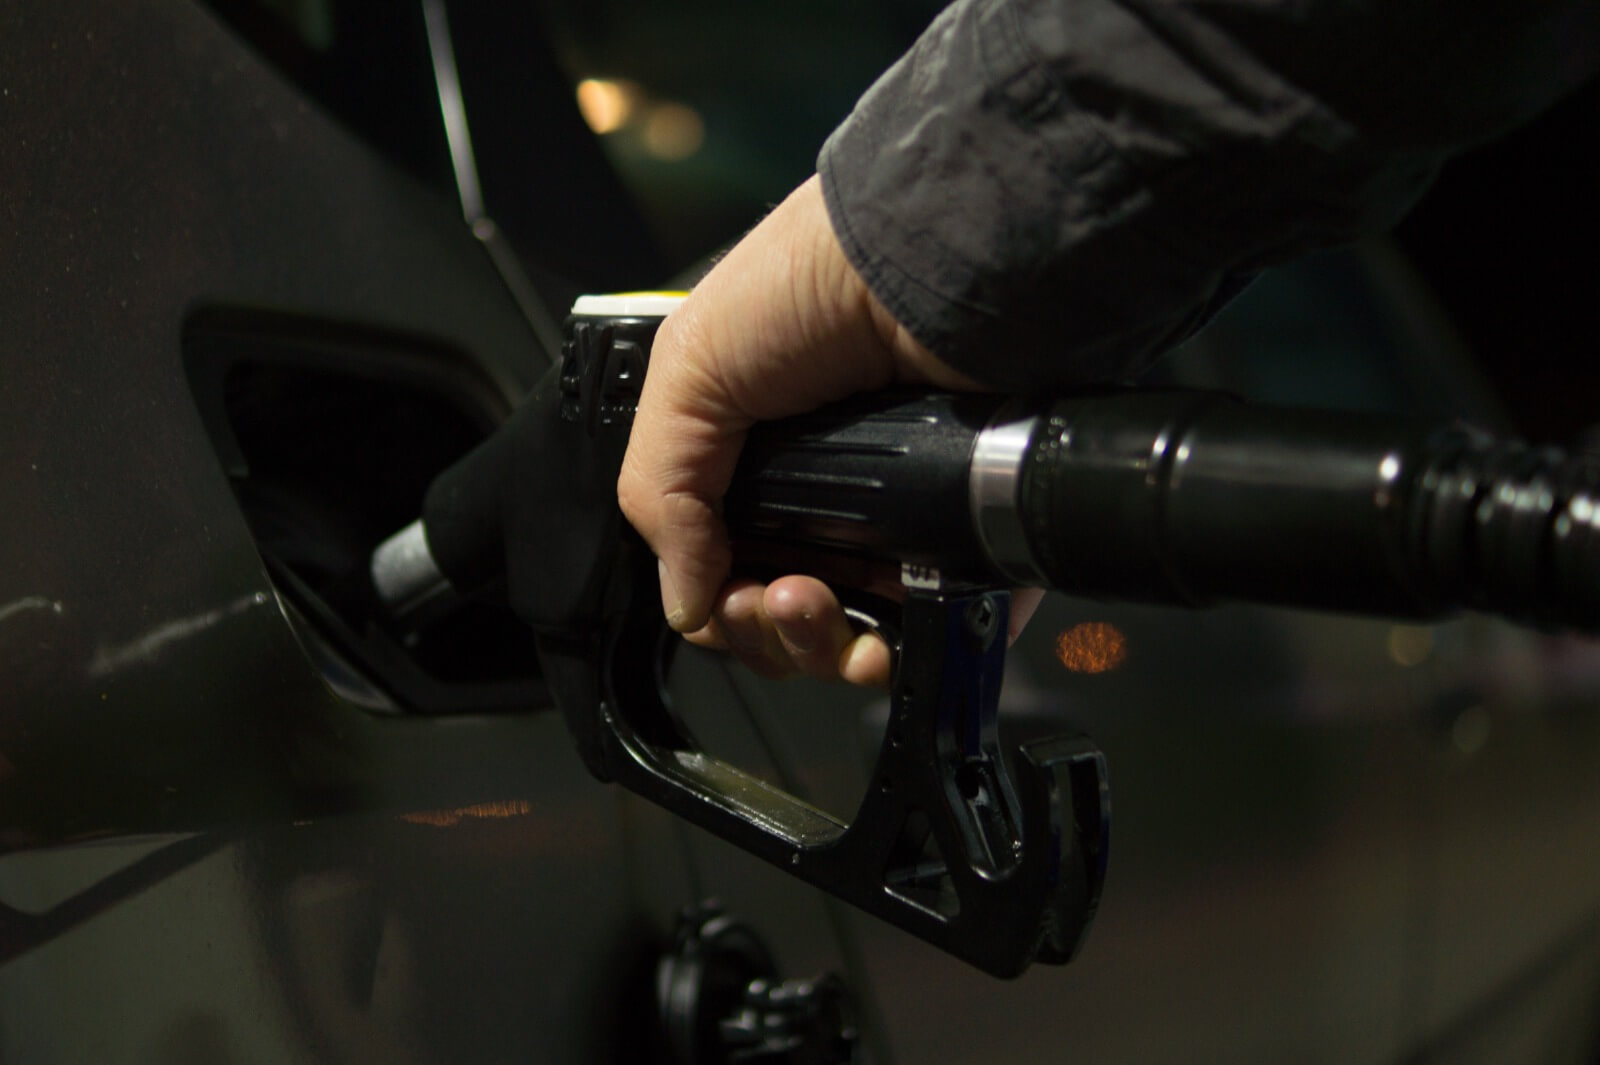 Huge increase in motorists putting the wrong fuel in their car during fuel crisis